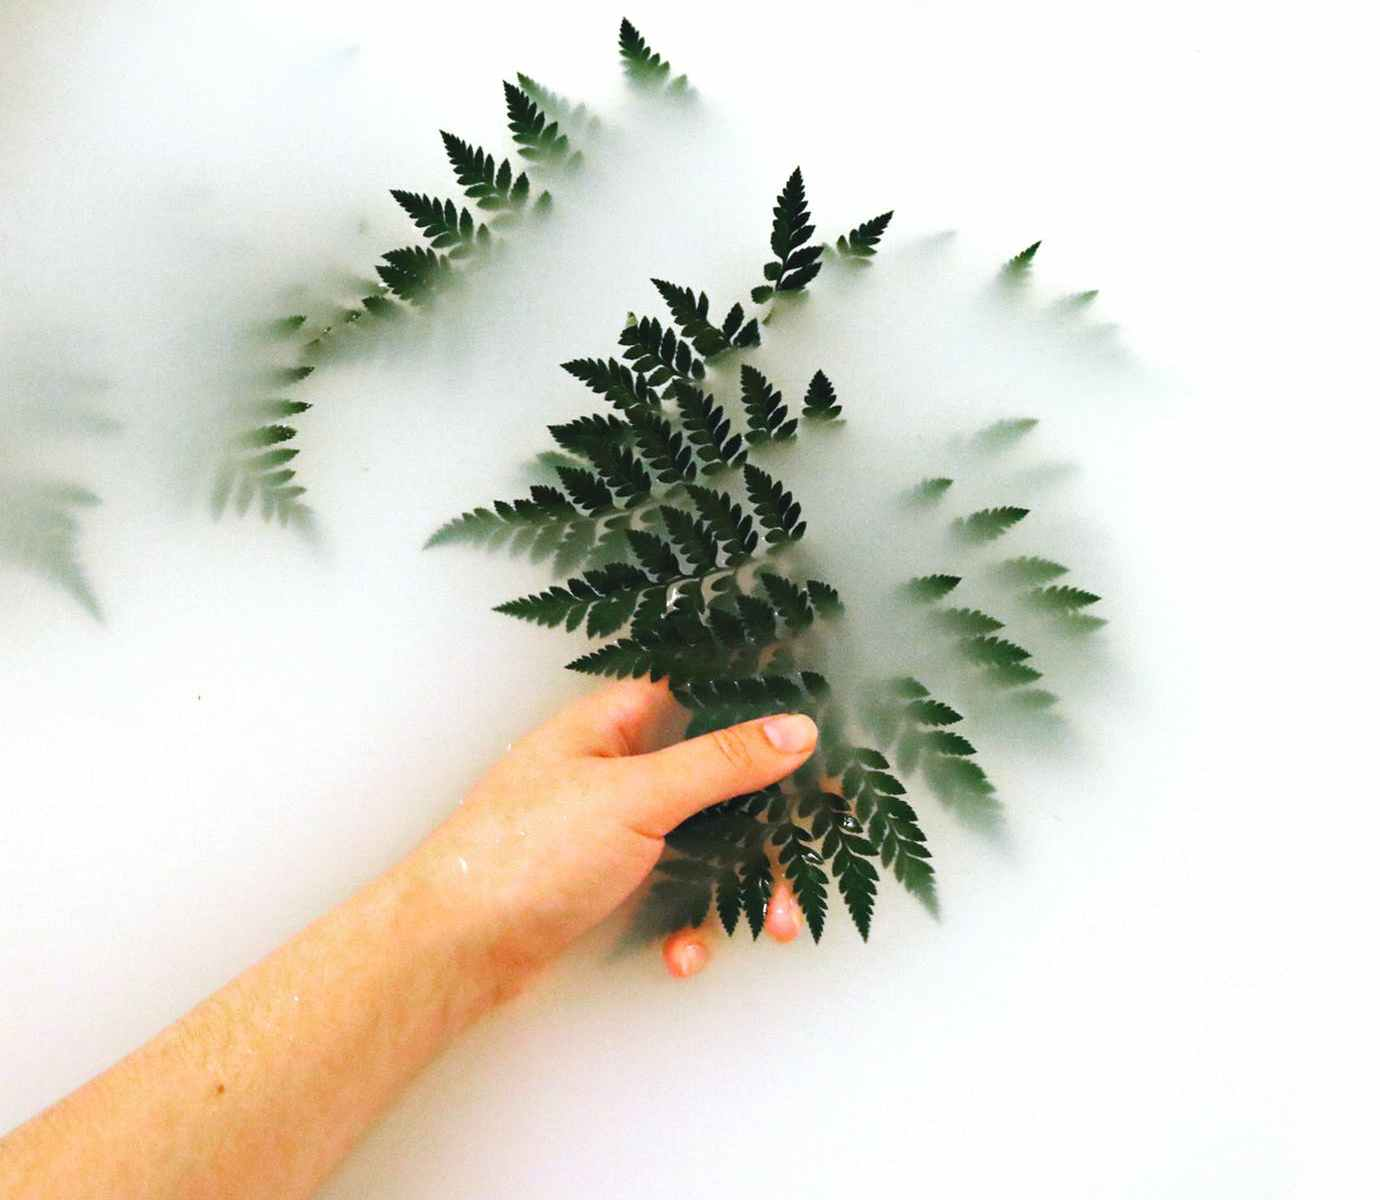 Person touching leaves in a fog